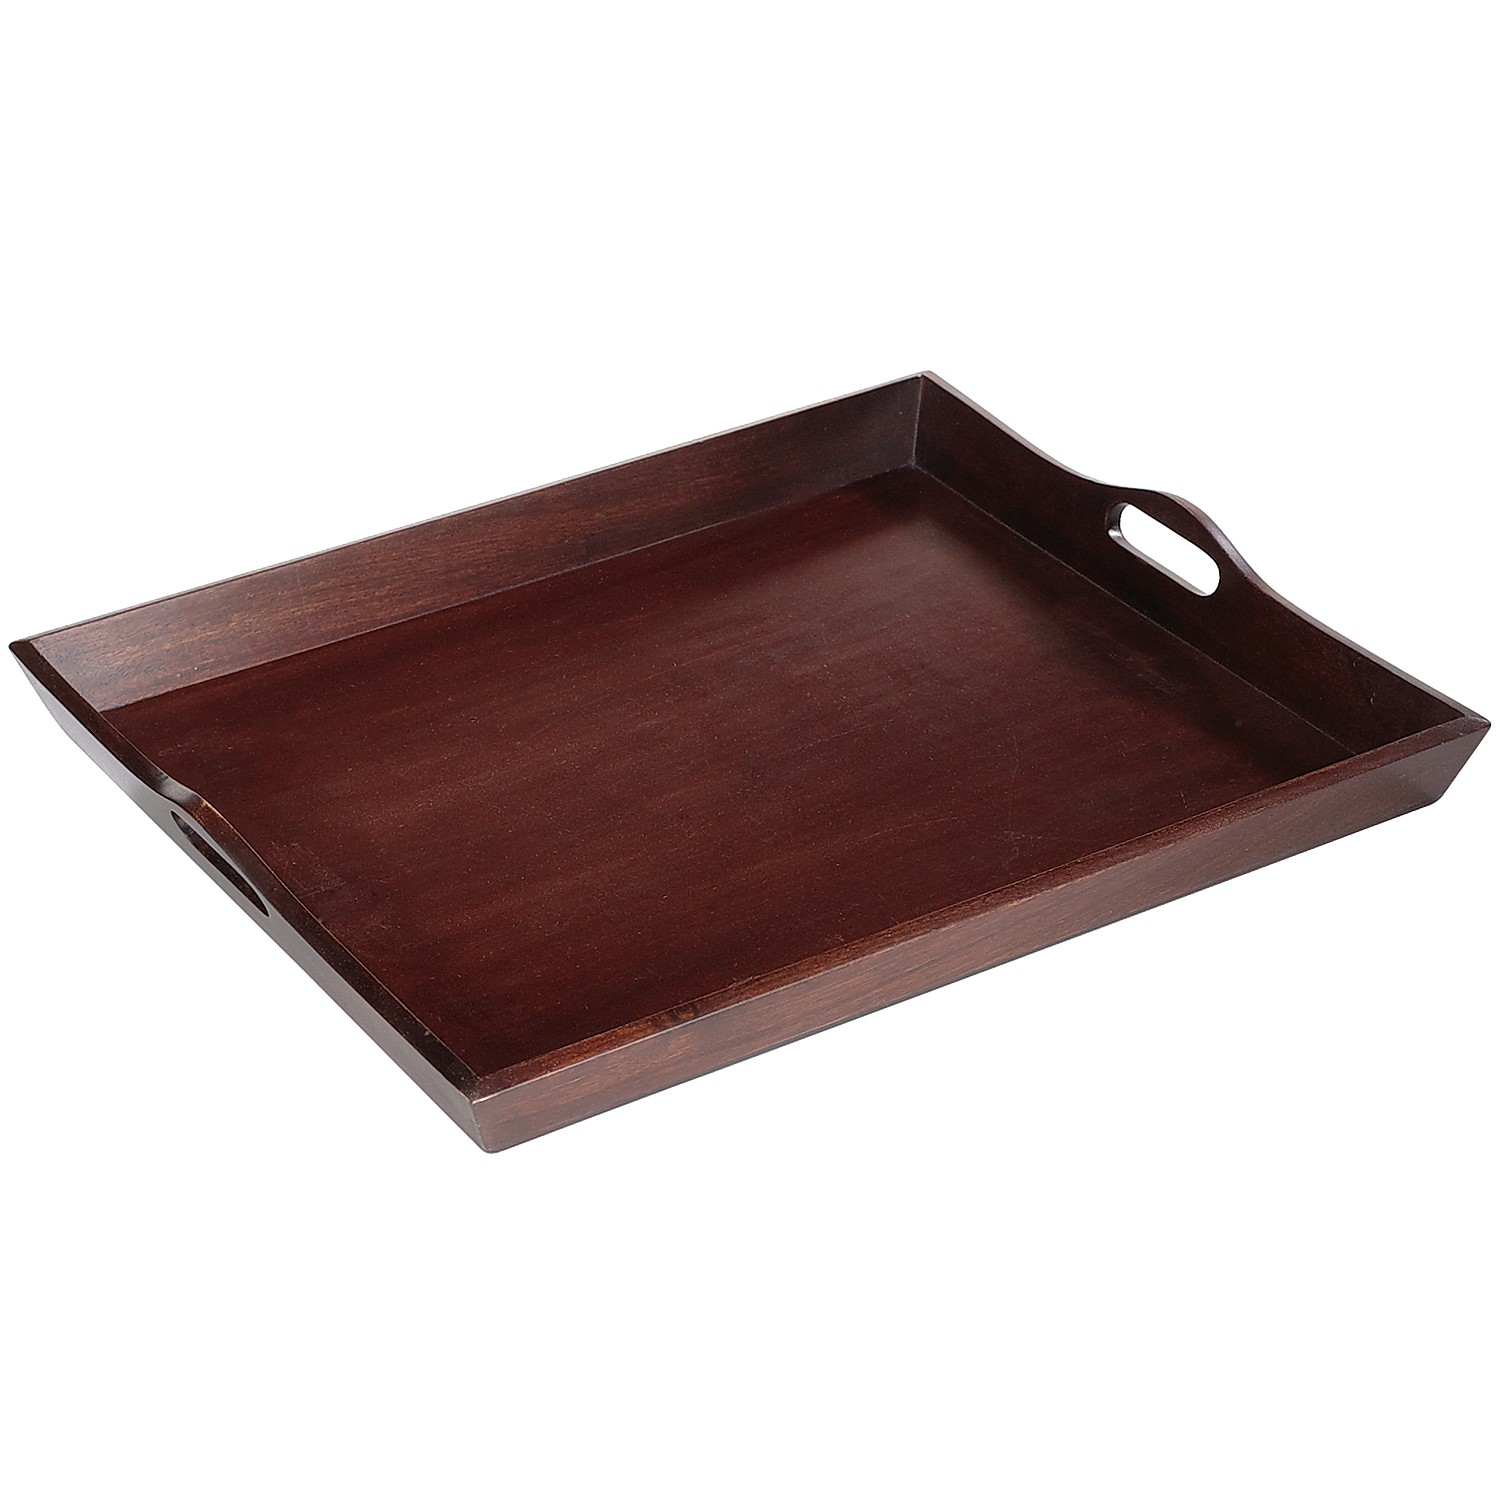 variation thumbnail of Oversized Wooden Tray